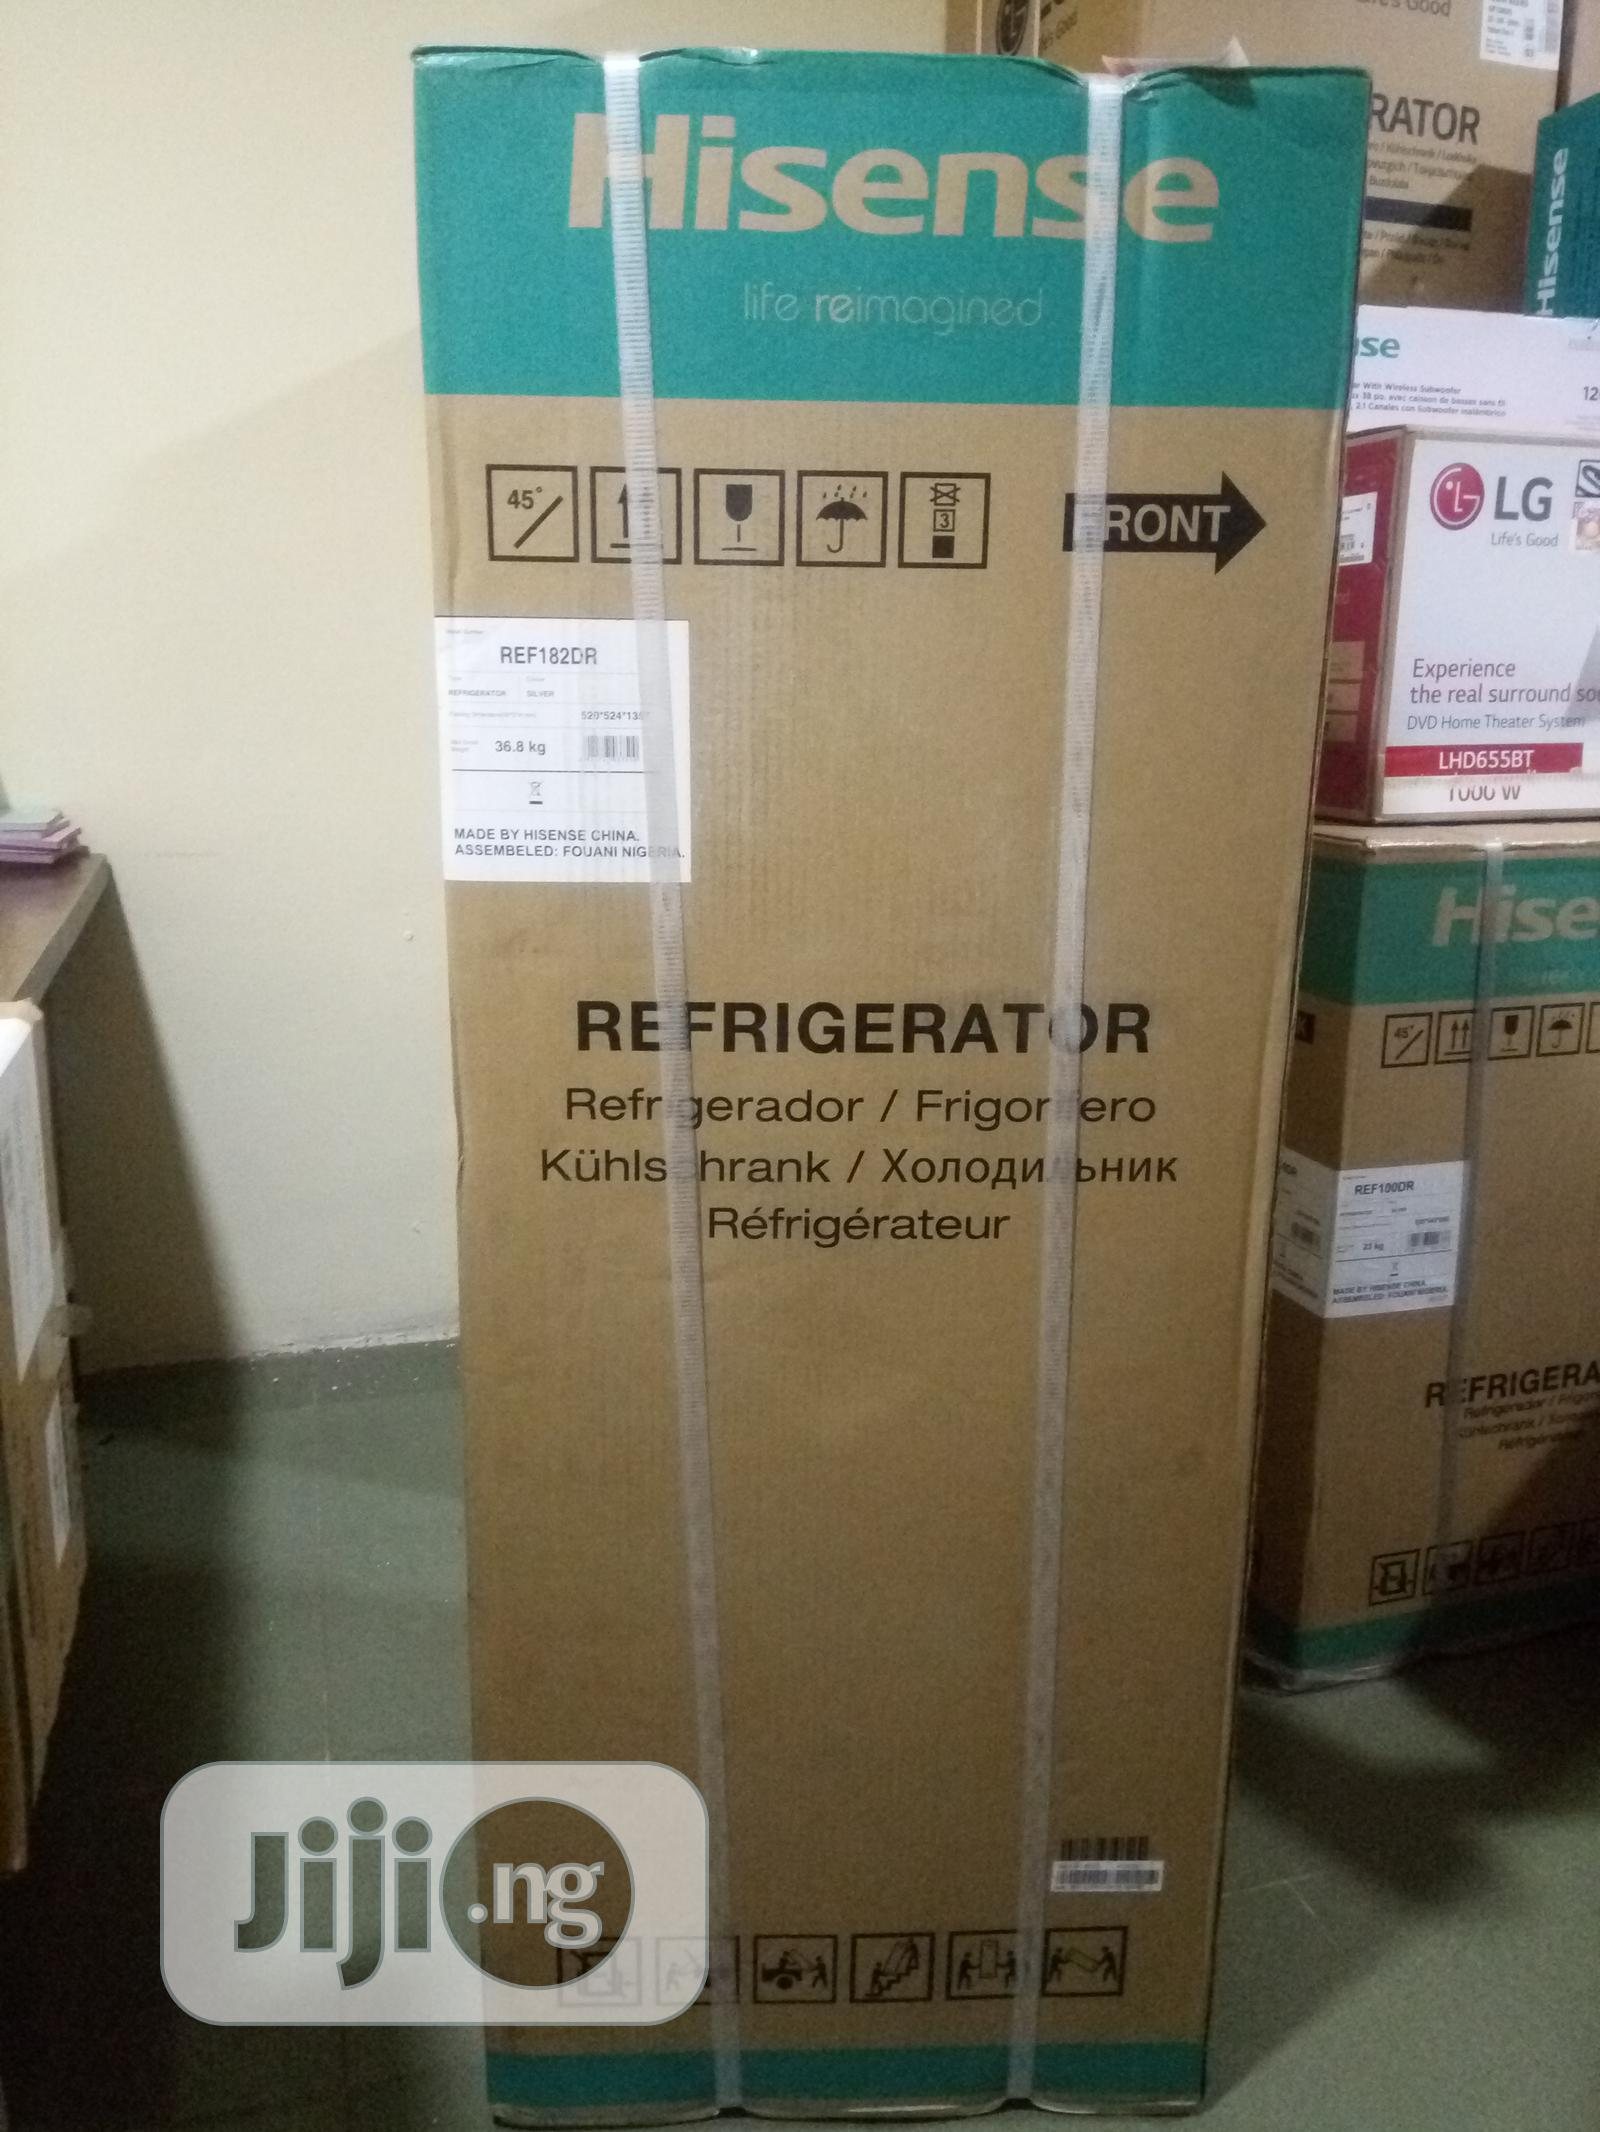 Hisense Refrigerator 130l Double Door Ref-182dr (Visit Www.Reco.Ng) | Kitchen Appliances for sale in Central Business Dis, Abuja (FCT) State, Nigeria